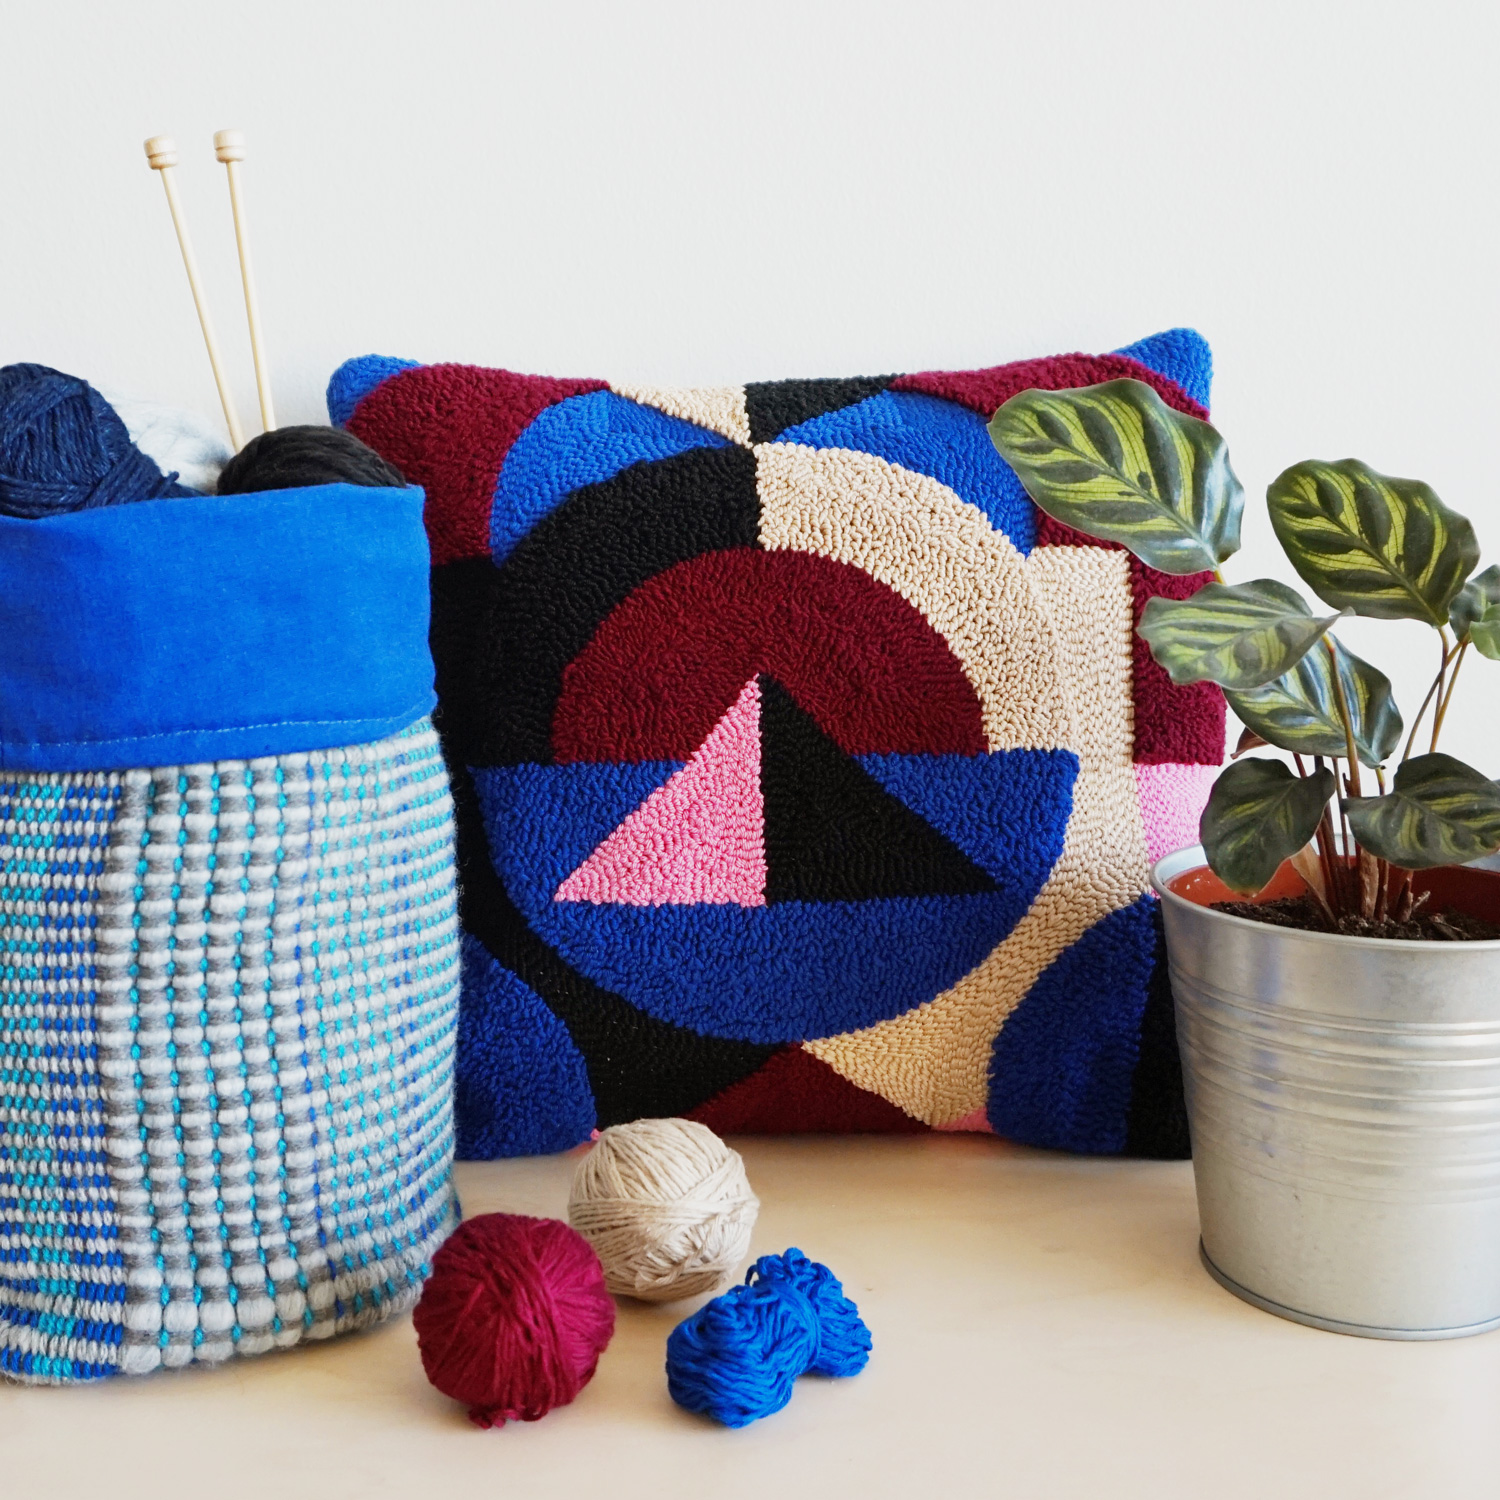 A fluffy punch needle pillow, featuring abstract shapes and a dual-texture with some carpety and some flat parts.